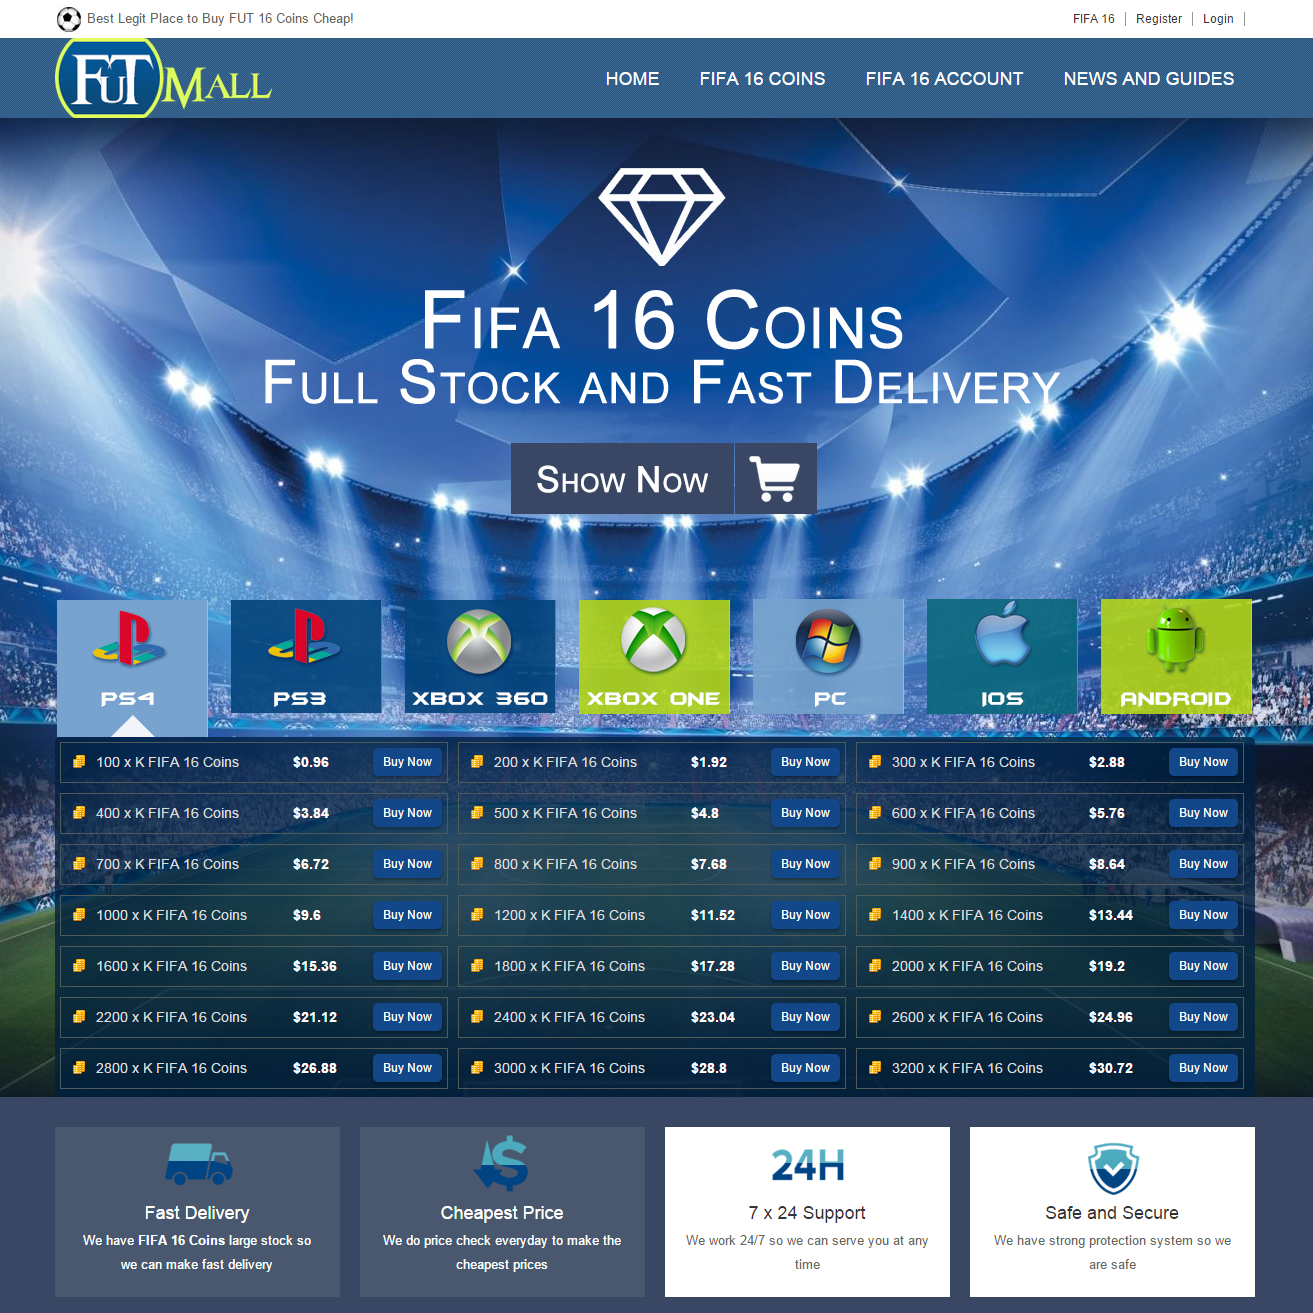 About FUTMALL FIFA 16 Gamer Store Video - FUTMALL.com